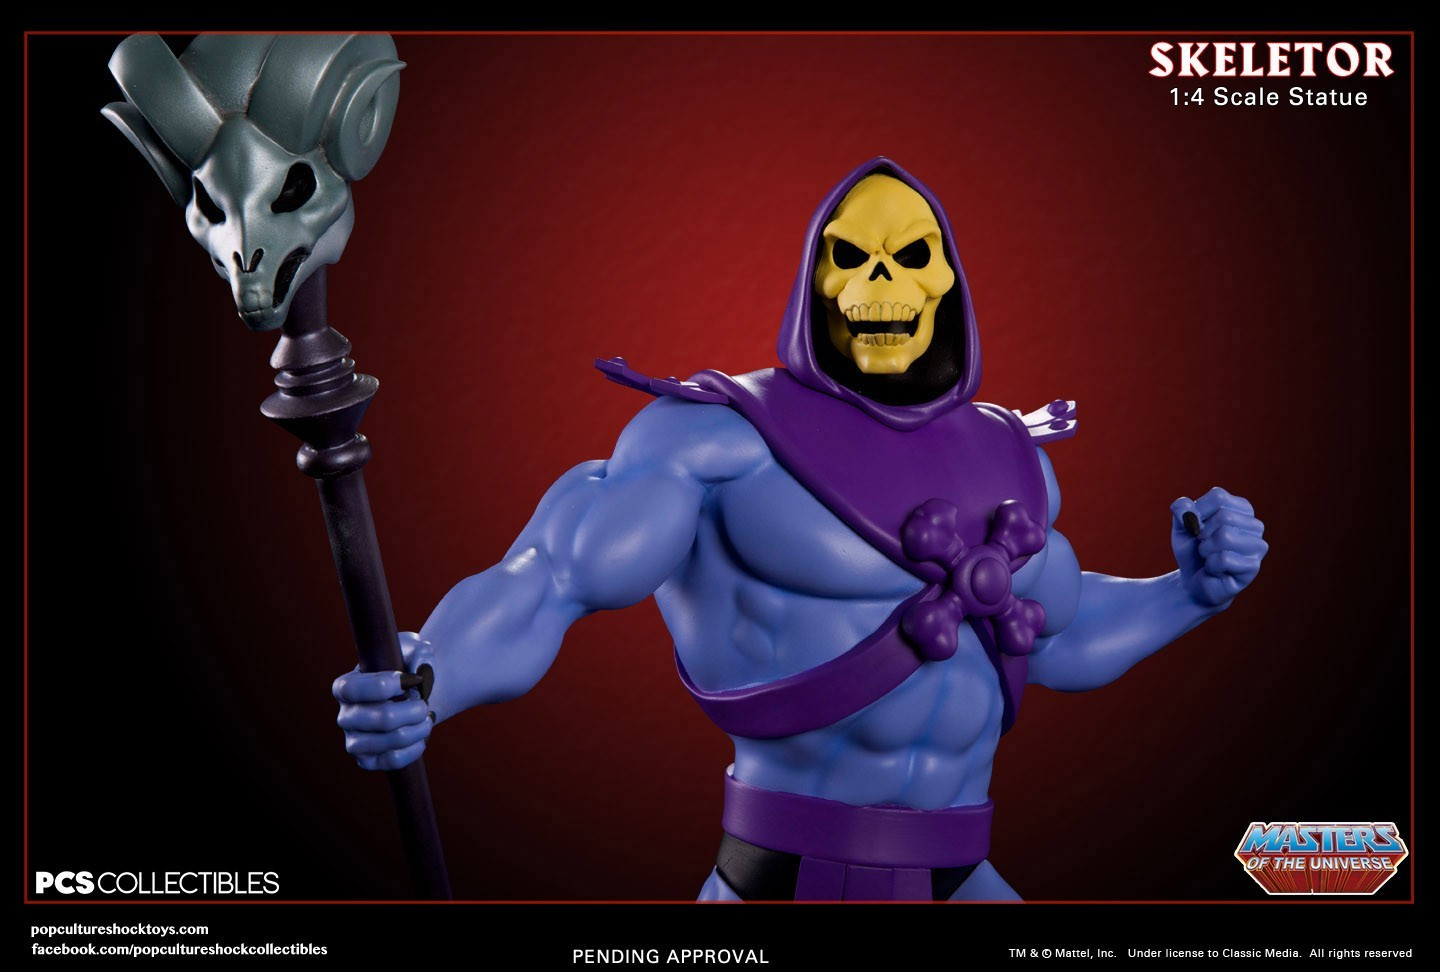 Alejandro pereira skeletor media t 1